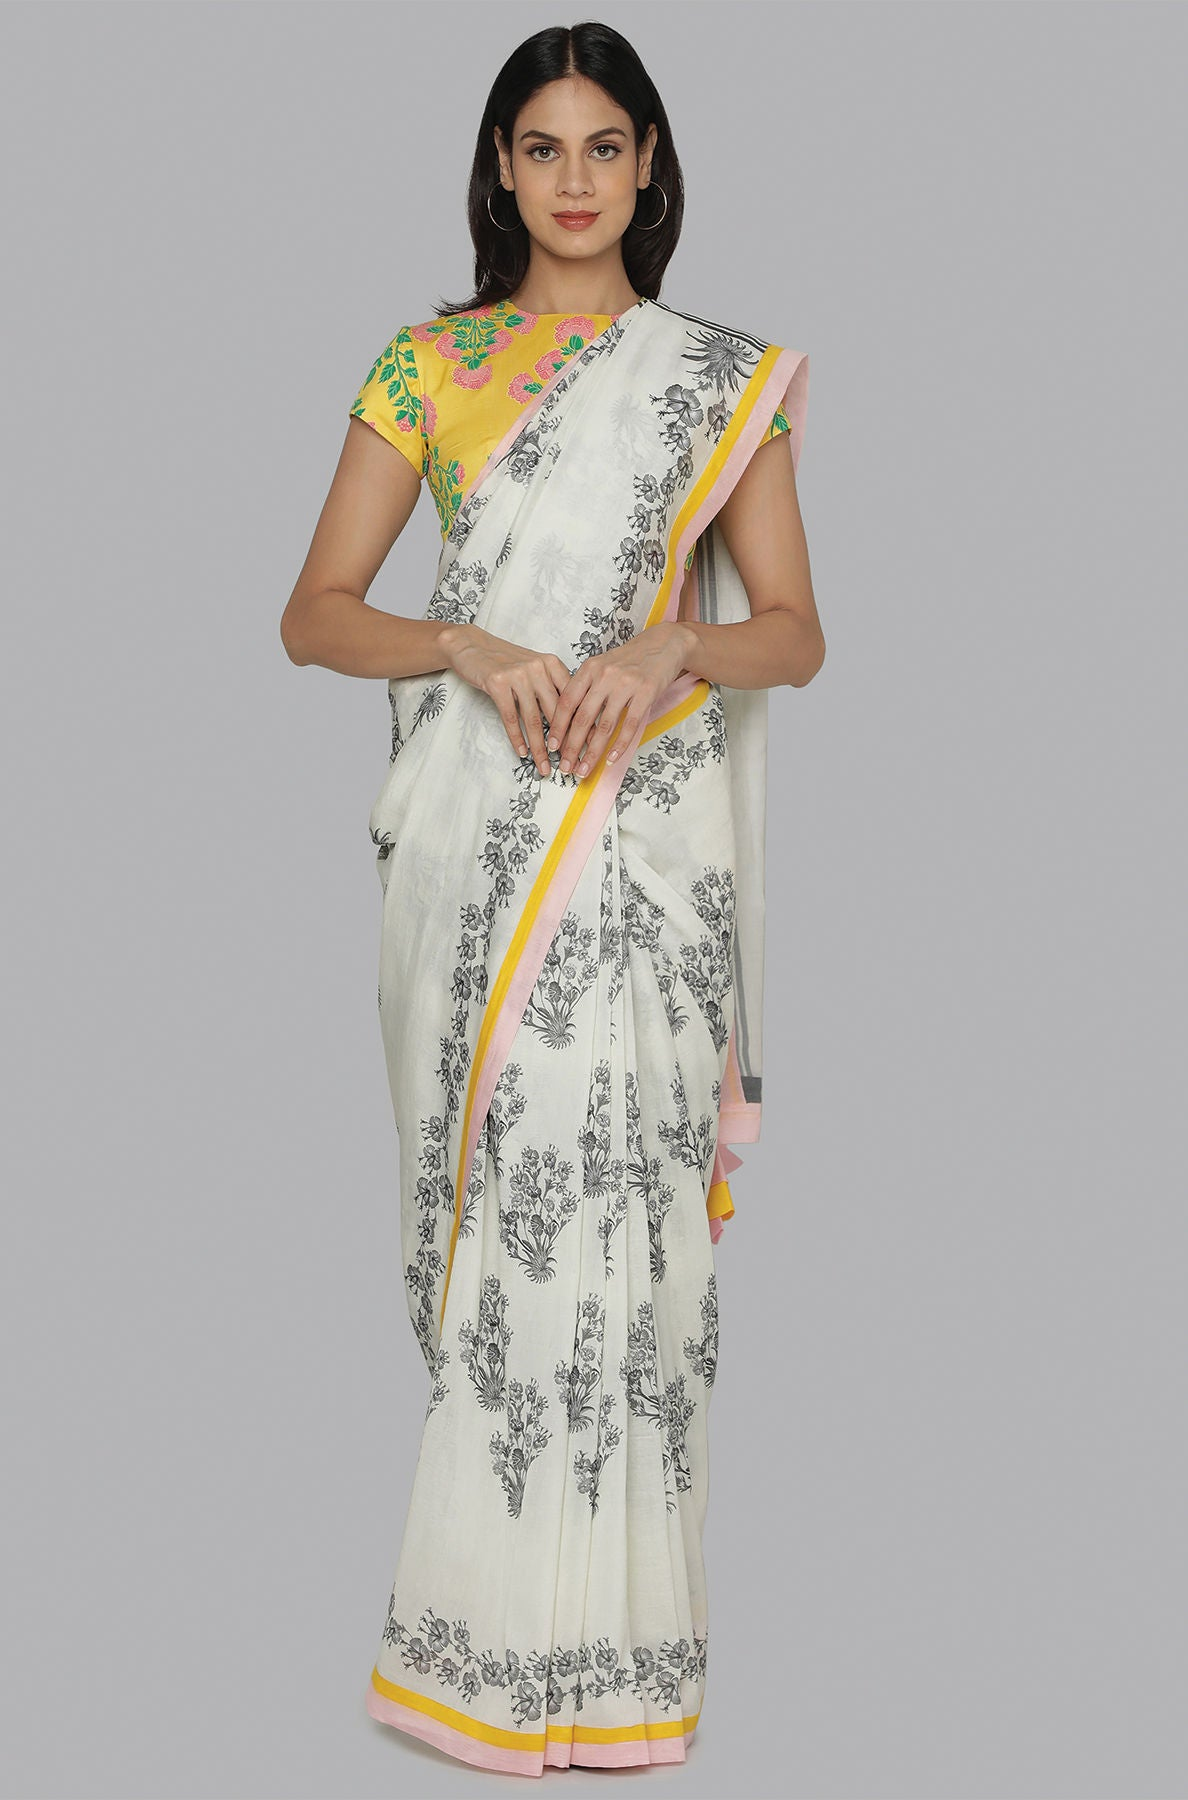 IVORY HIBISCUS SARI WITH YELLOW FLORAL BLOOM BLOUSE PIECE - The Grand Trunk